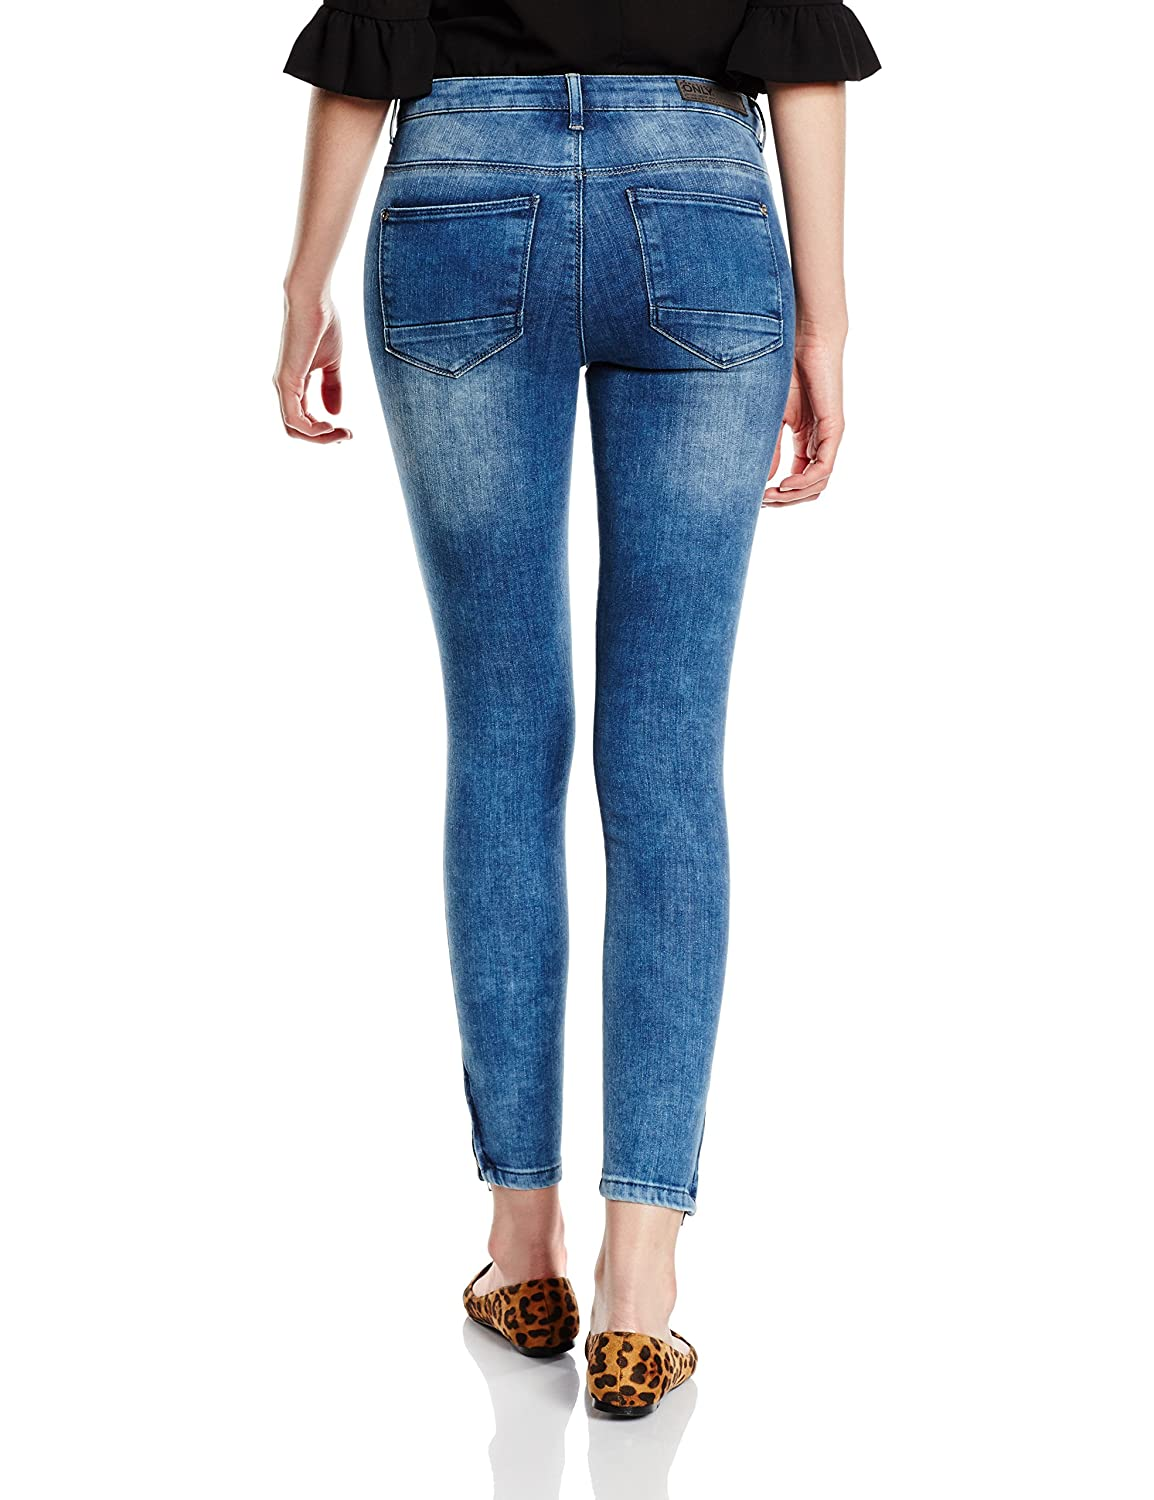 Womens Onlkendell Reg Sk ANK Jea Cre100 Noos Jeans Only Outlet 2018 New Visit Best Place For Sale Pick A Best Online PlTPbfJ